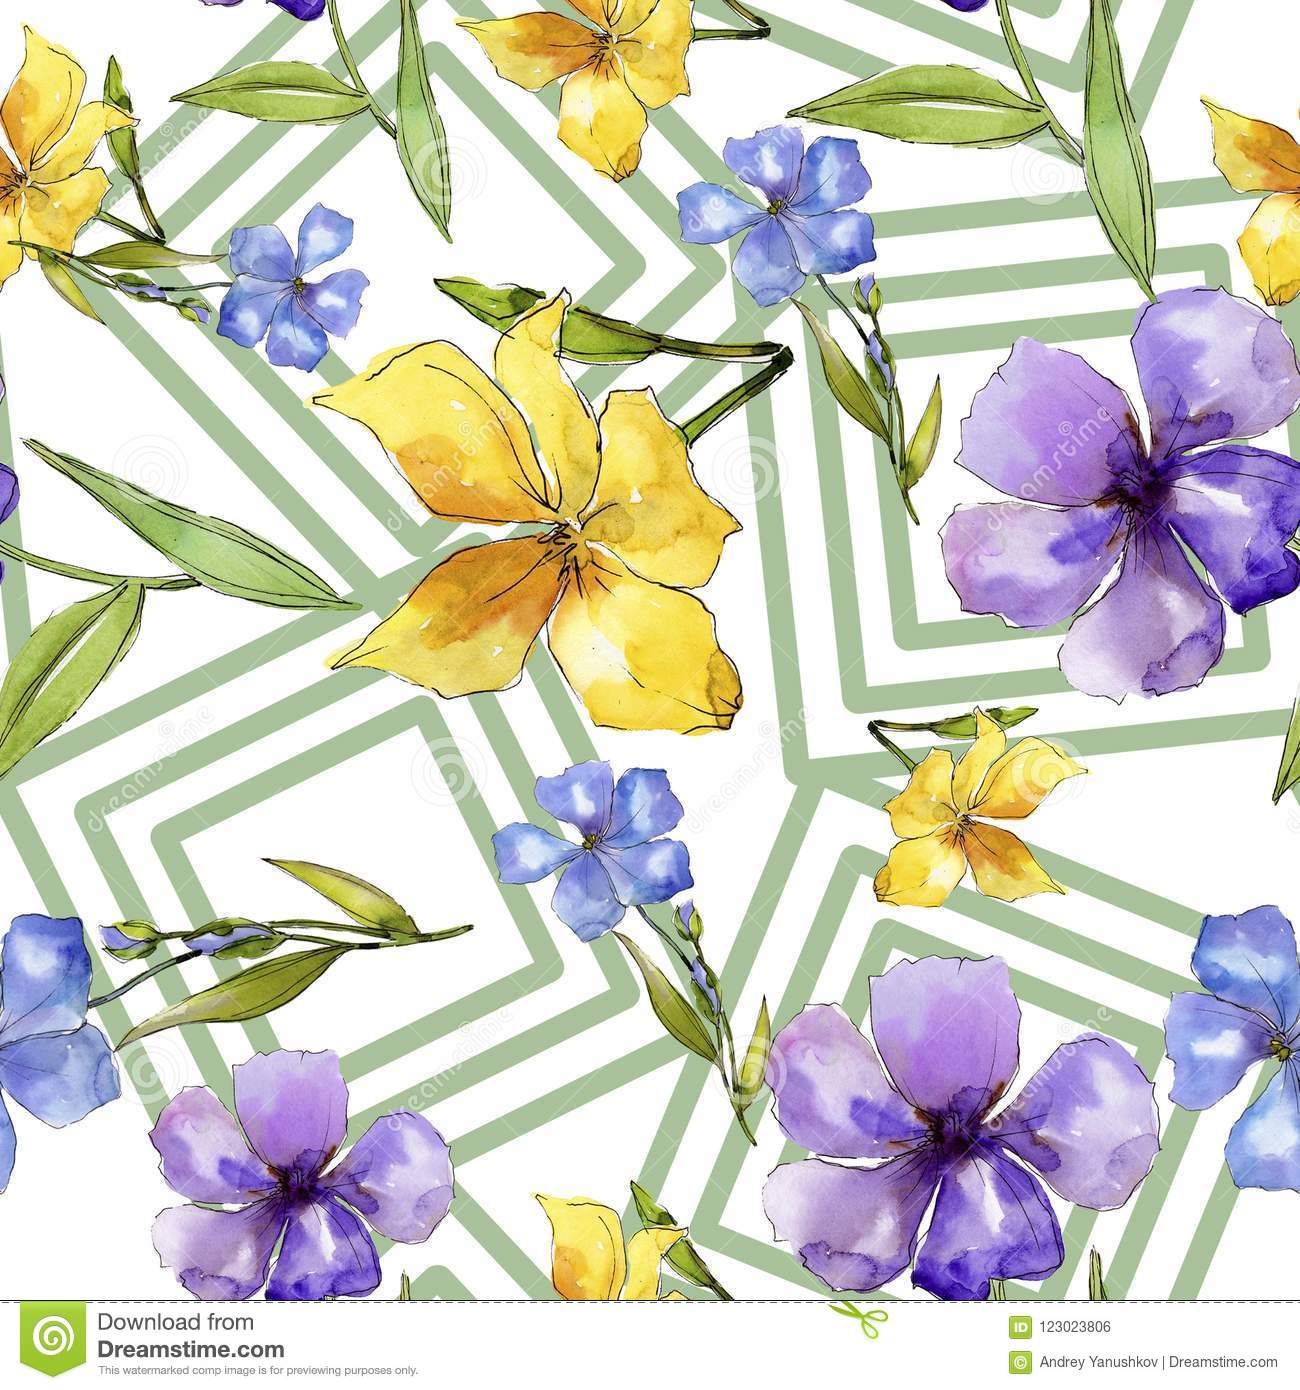 Watercolor blue and yellow flax flowers floral botanical flower download watercolor blue and yellow flax flowers floral botanical flower seamless background pattern mightylinksfo